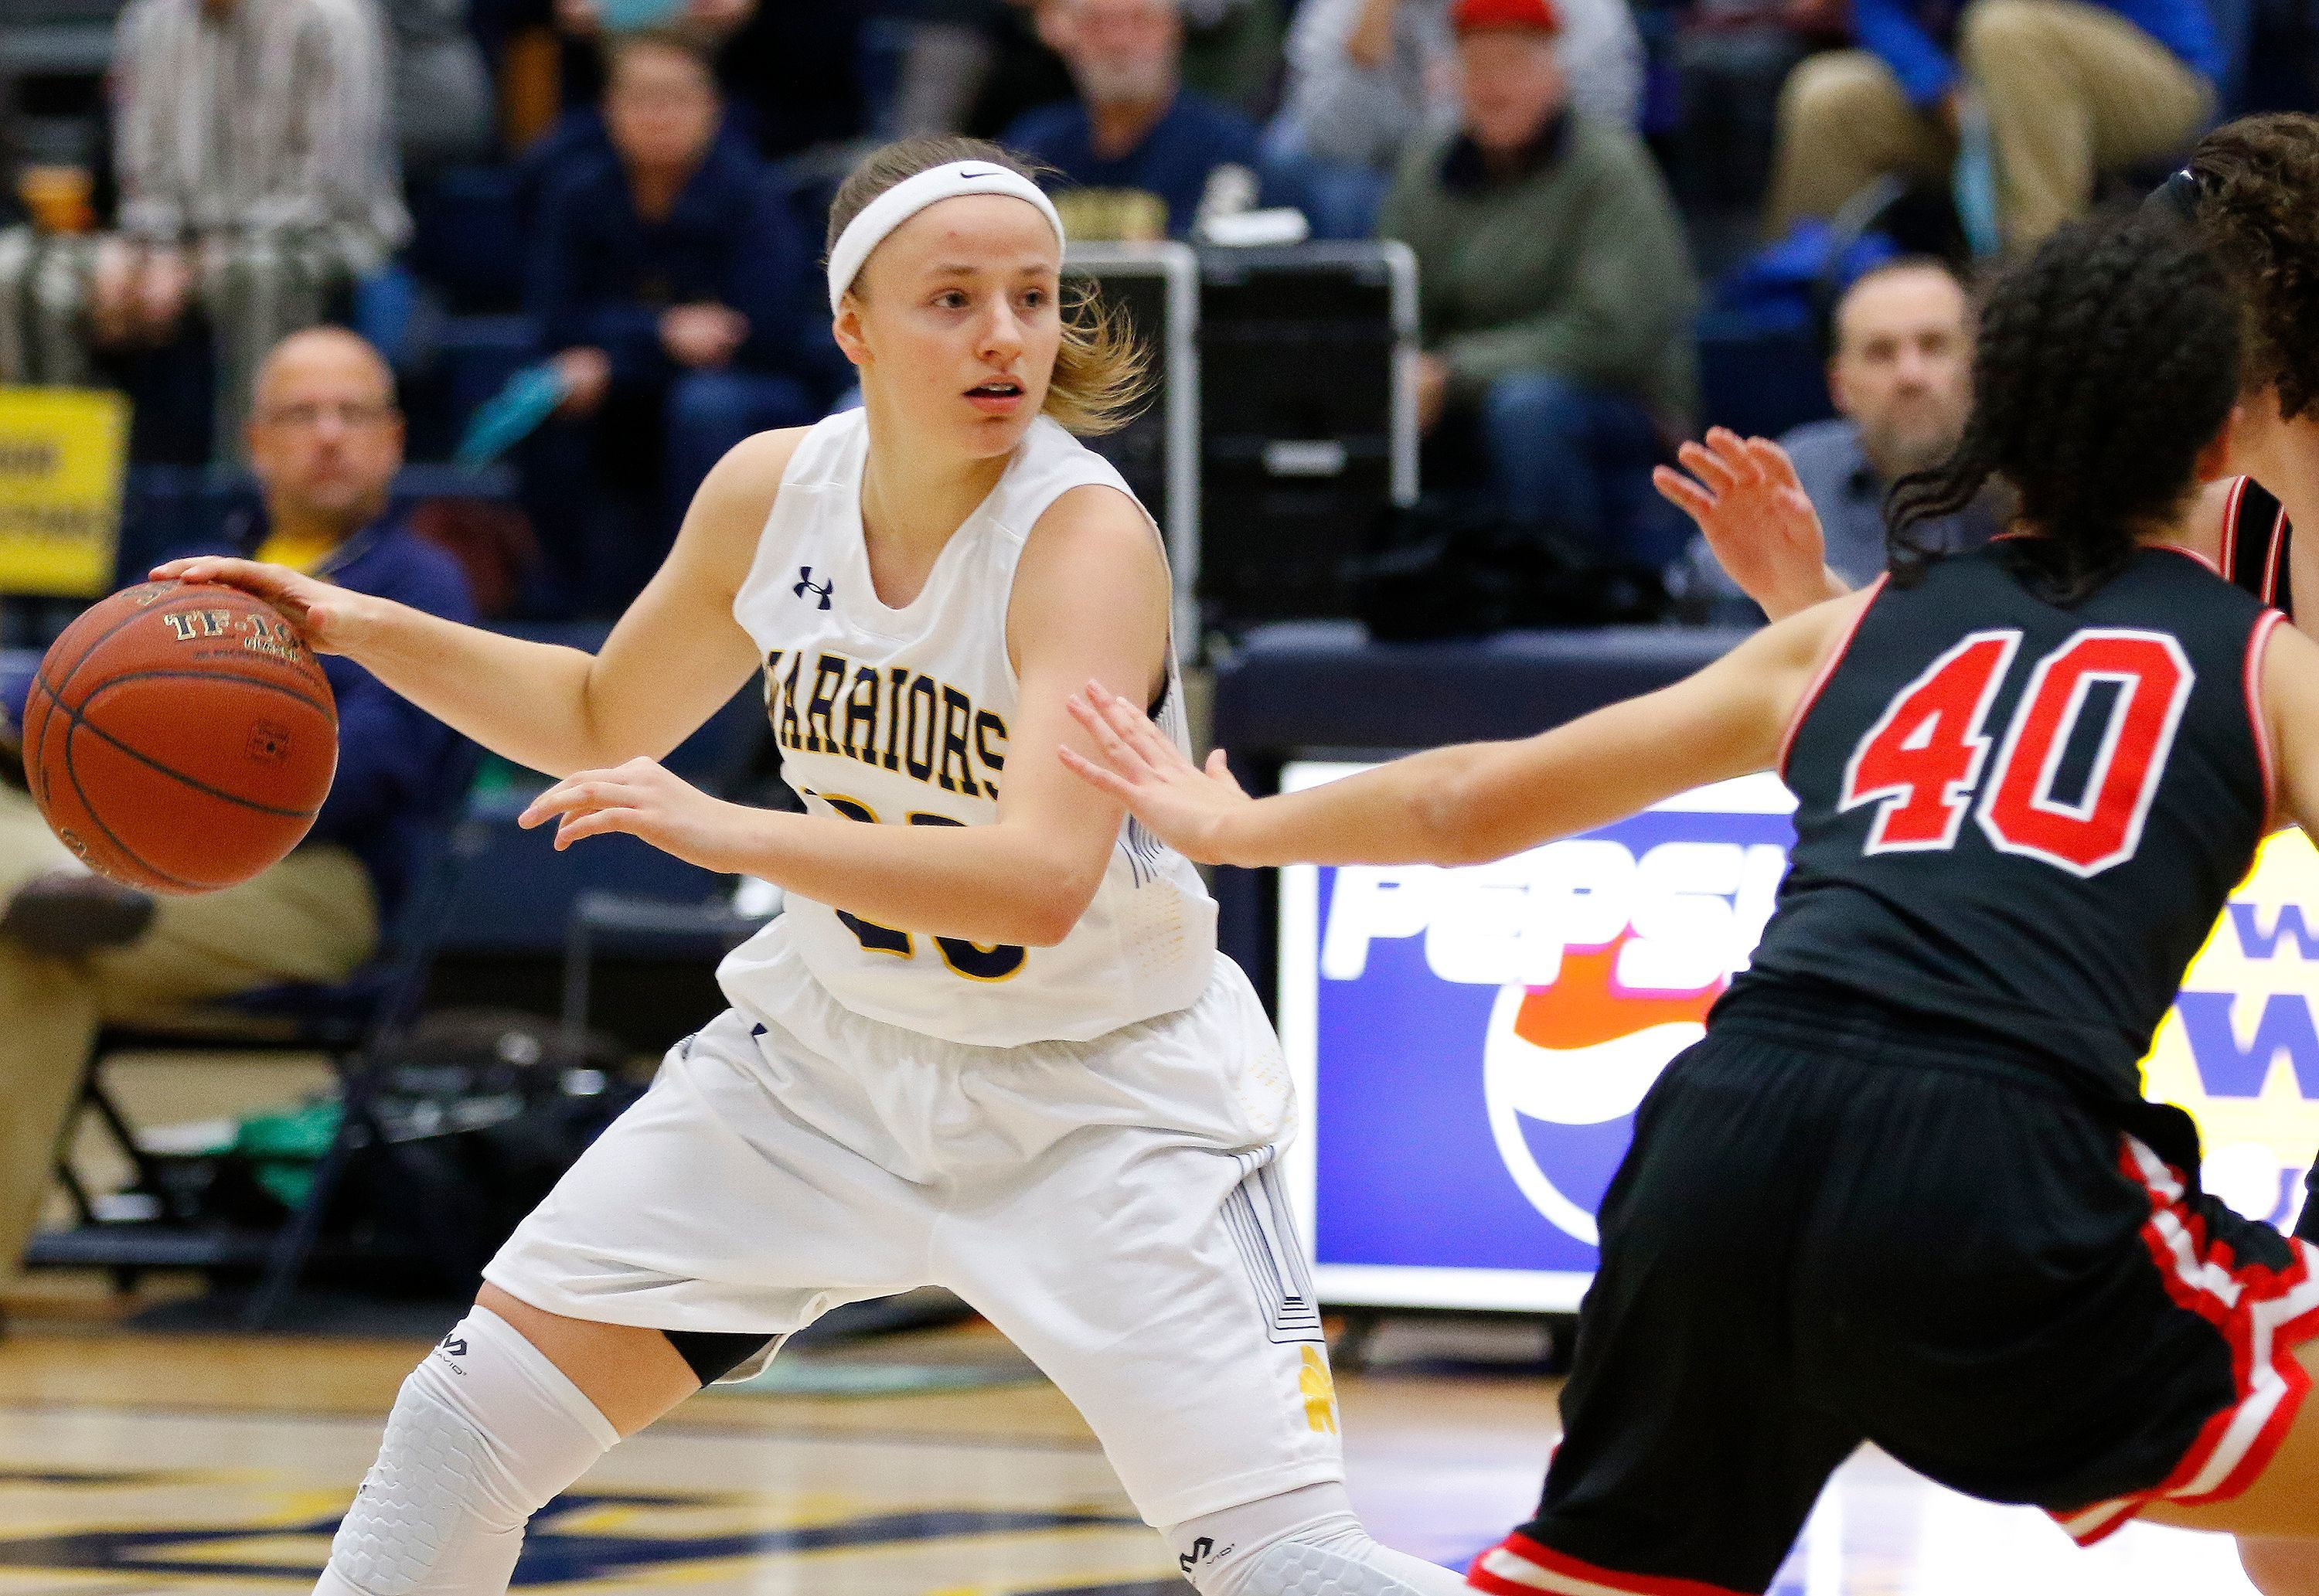 Wausau West senior Maddie Schires, left, has committed to Youngstown State.